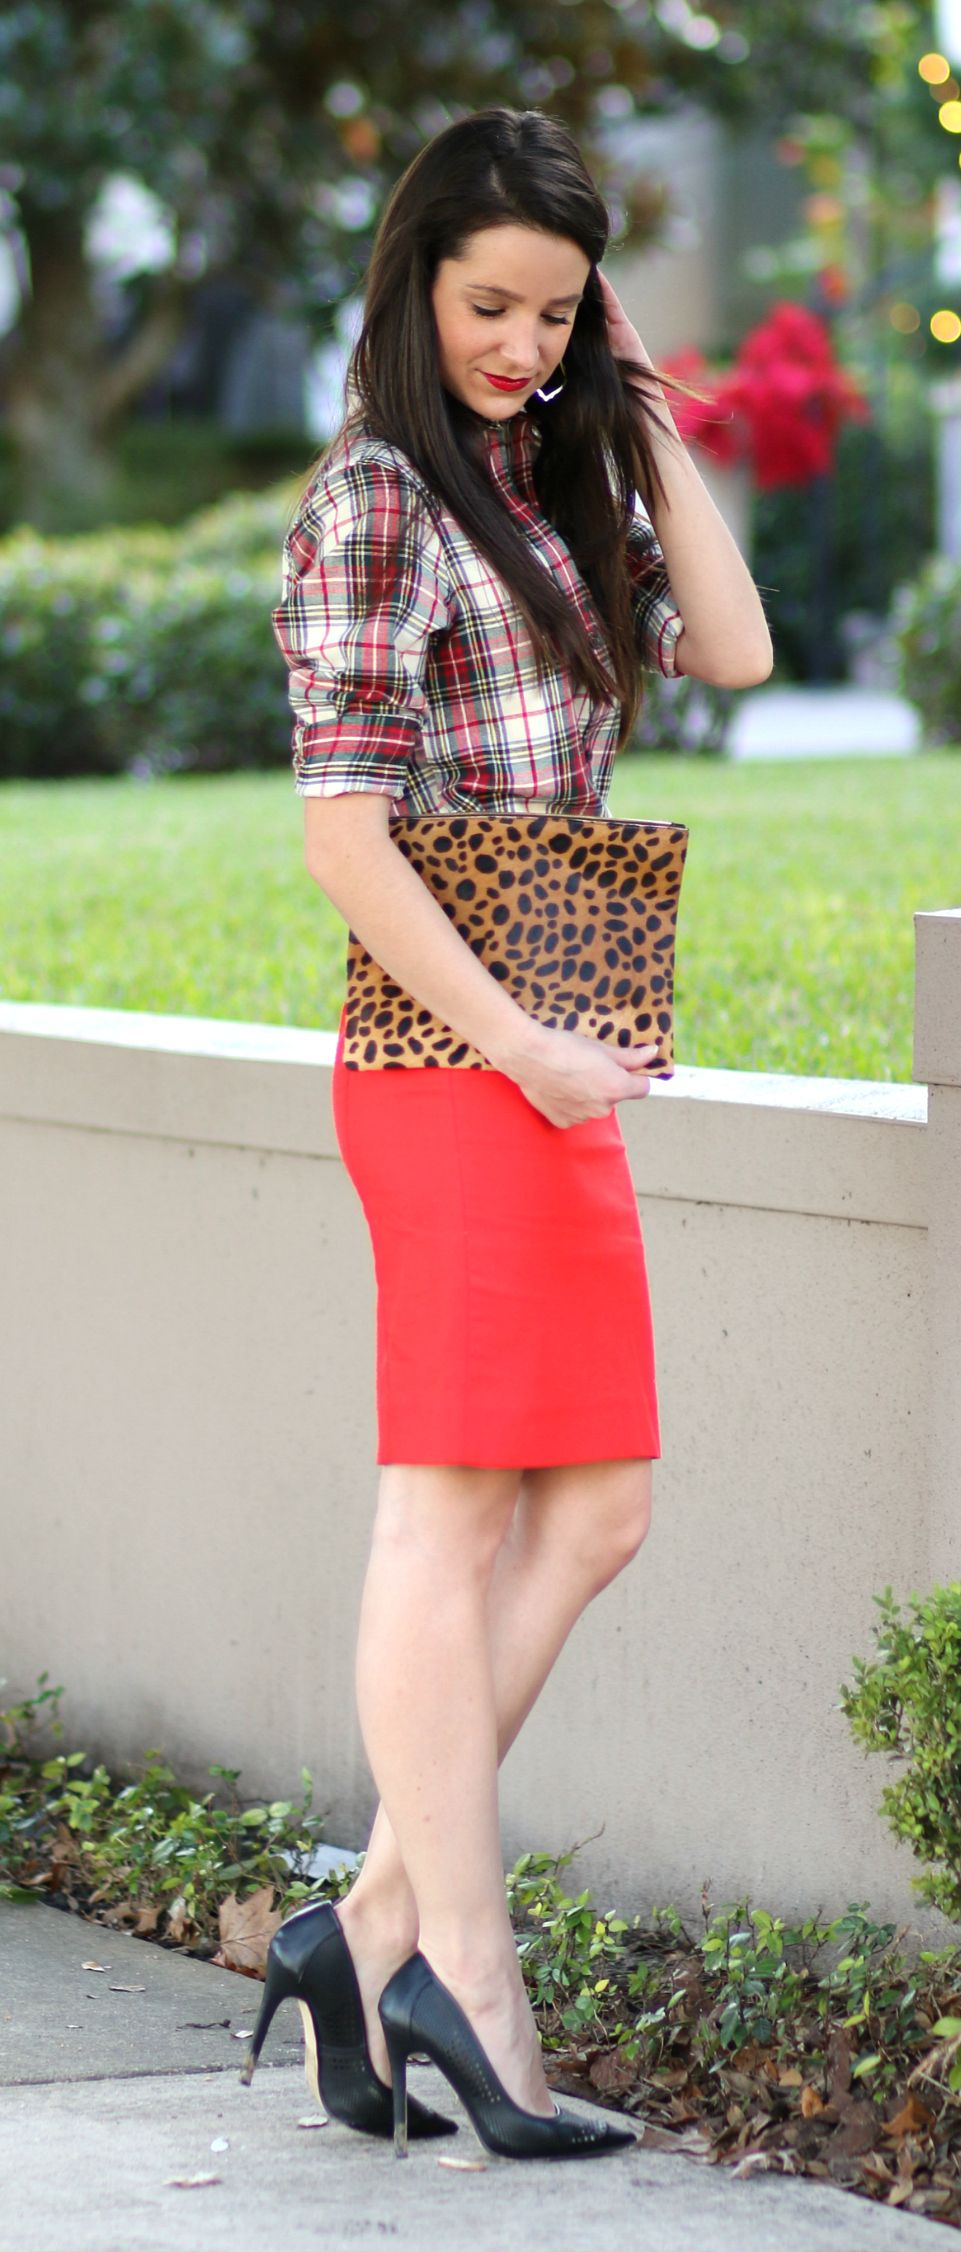 059ffd5442 How to wear a red pencil skirt to work in December! Love this festive  holiday look. J.Crew Factory red pencil skirt with a Scotch plaid flannel  shirt, ...